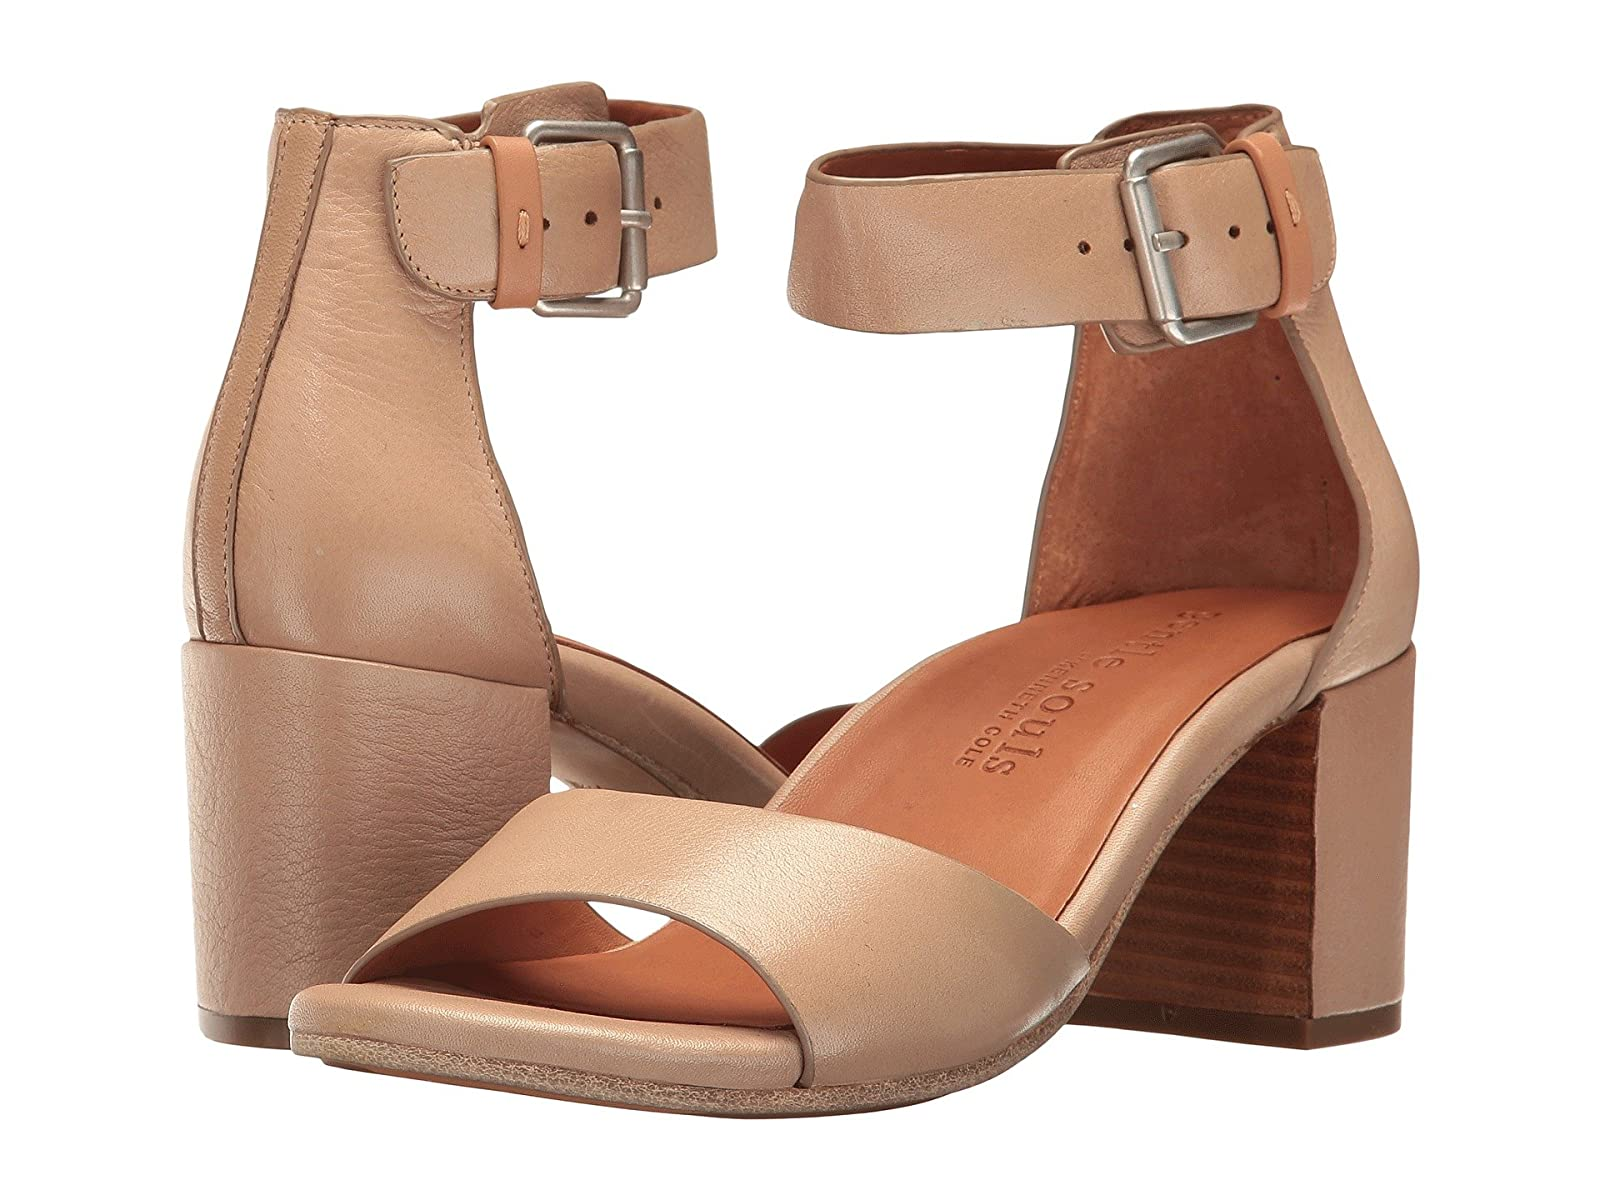 Gentle Souls by Kenneth Cole ChristaAtmospheric grades have affordable shoes